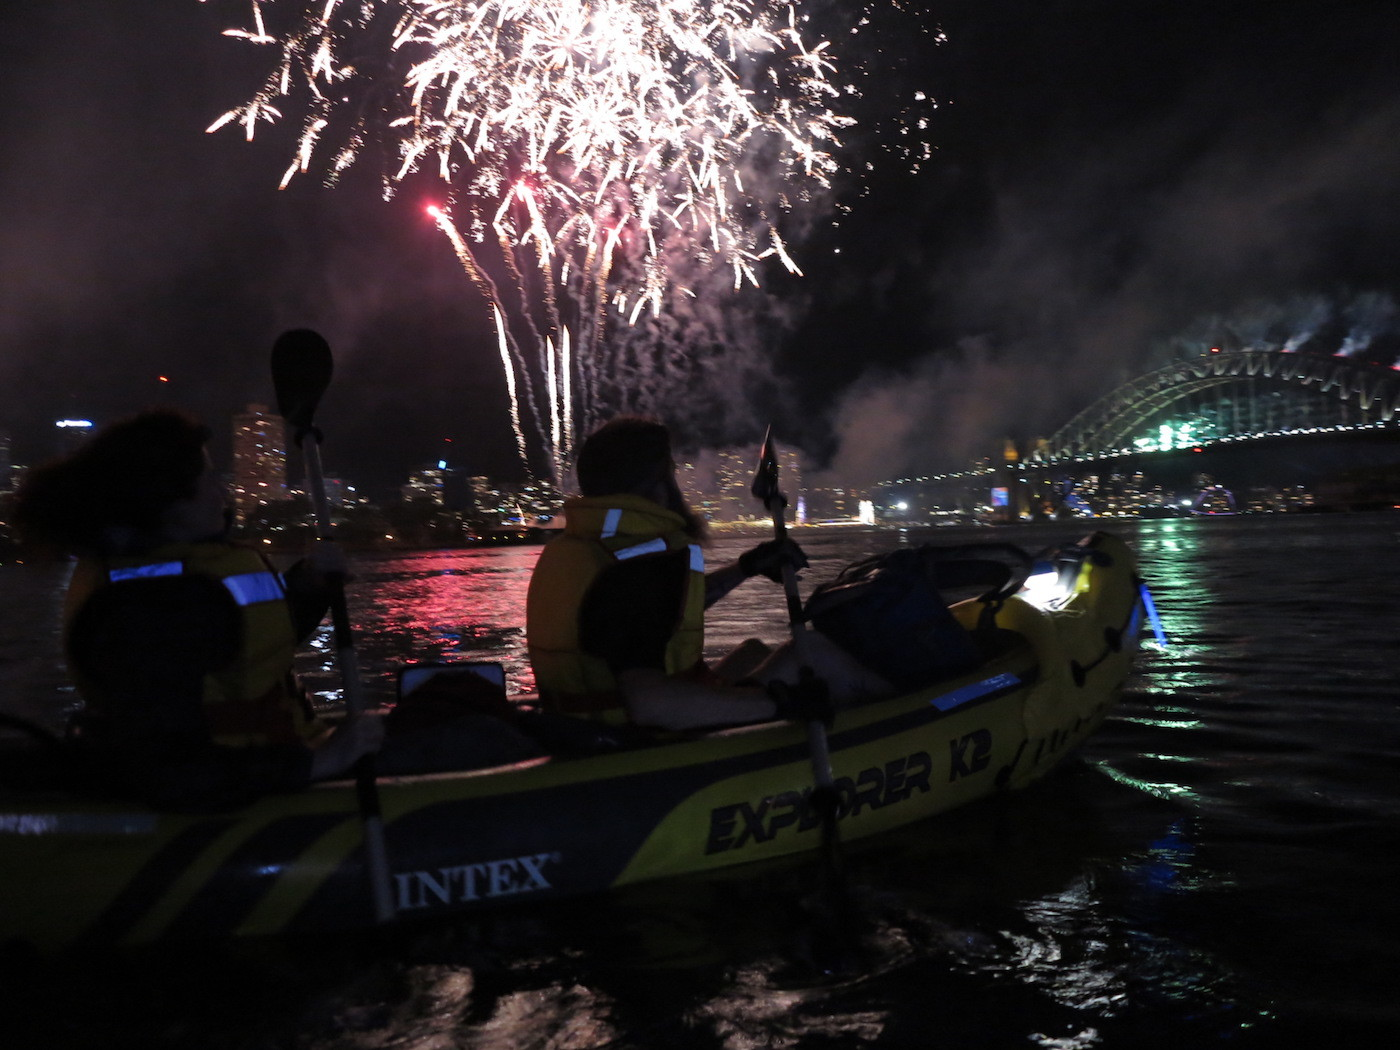 Re-Ignite Your New Year's Eve – Fireworks By Kayak Dan Slater fireworks, sydney harbour, kayaking, life jackets